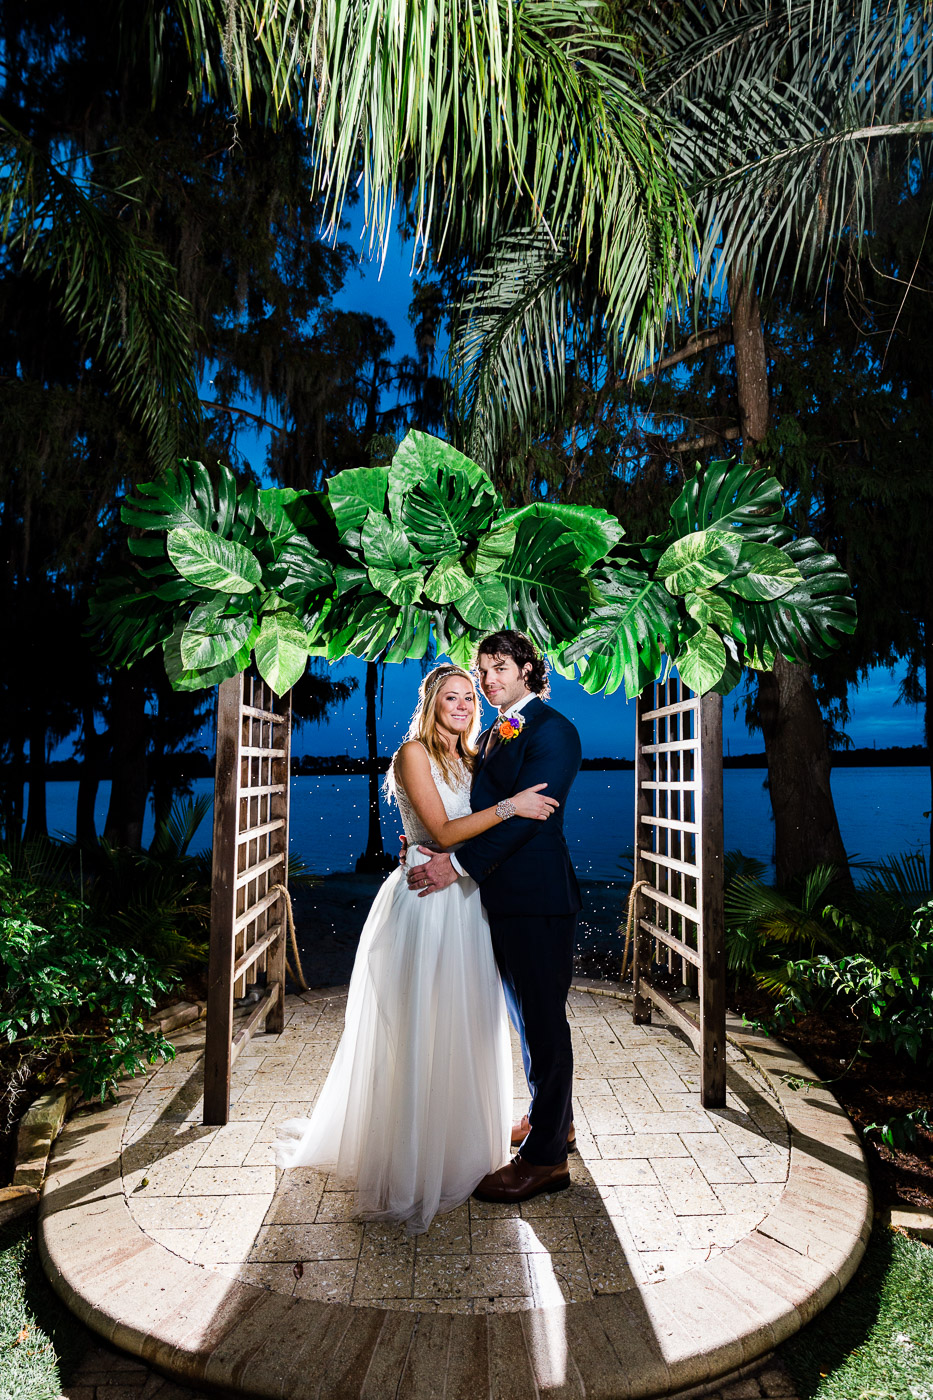 Wedding-at-Paradise-Cove-in-Orlando-Florida-41.jpg